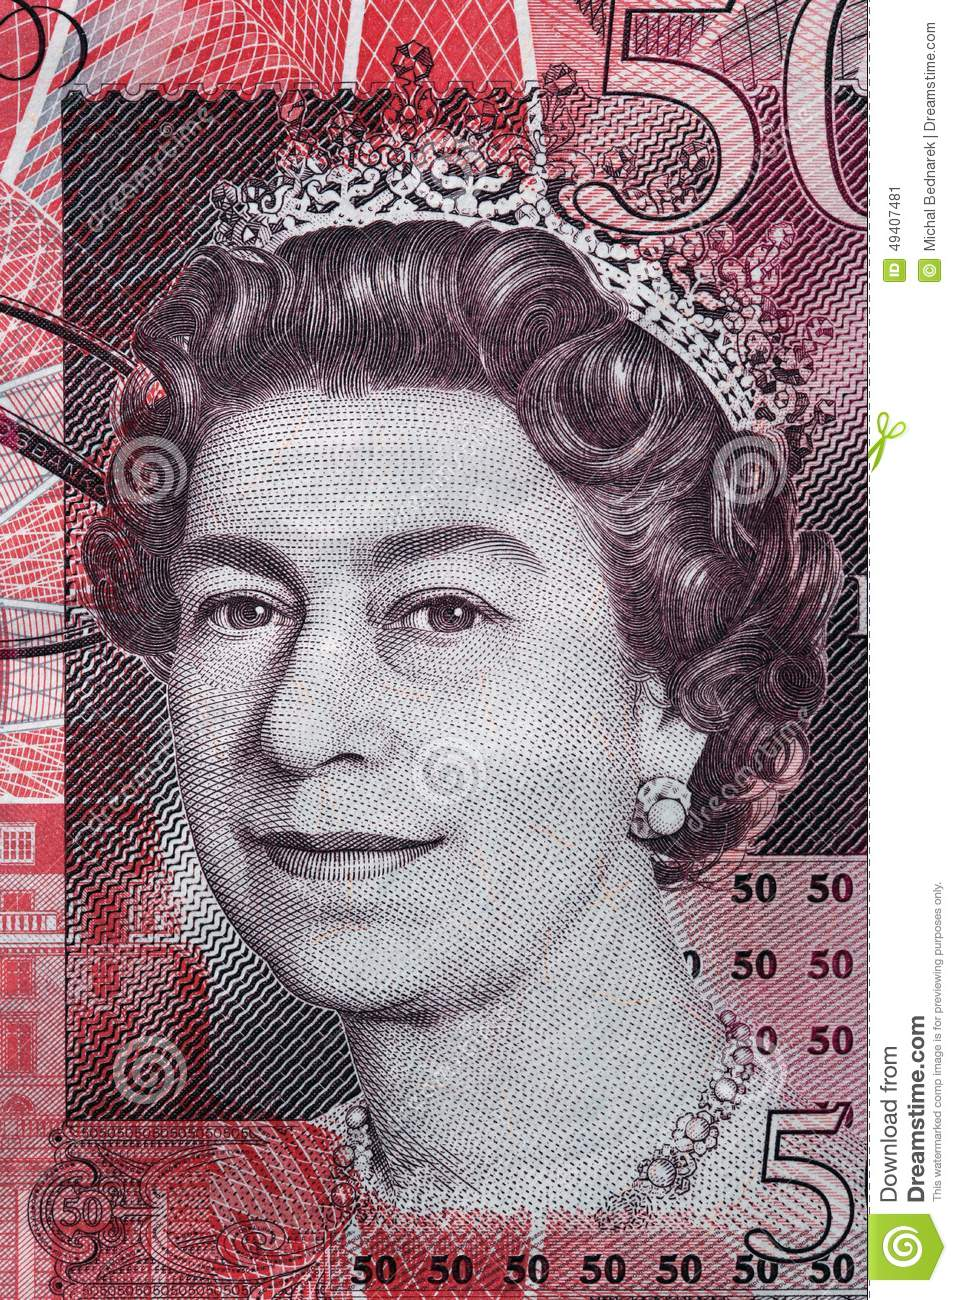 Queen Elizabeth II portrait on 50 pound sterling banknote Editorial Photo - queen-elizabeth-ii-portrait-pound-sterling-banknote-british-currency-49407481